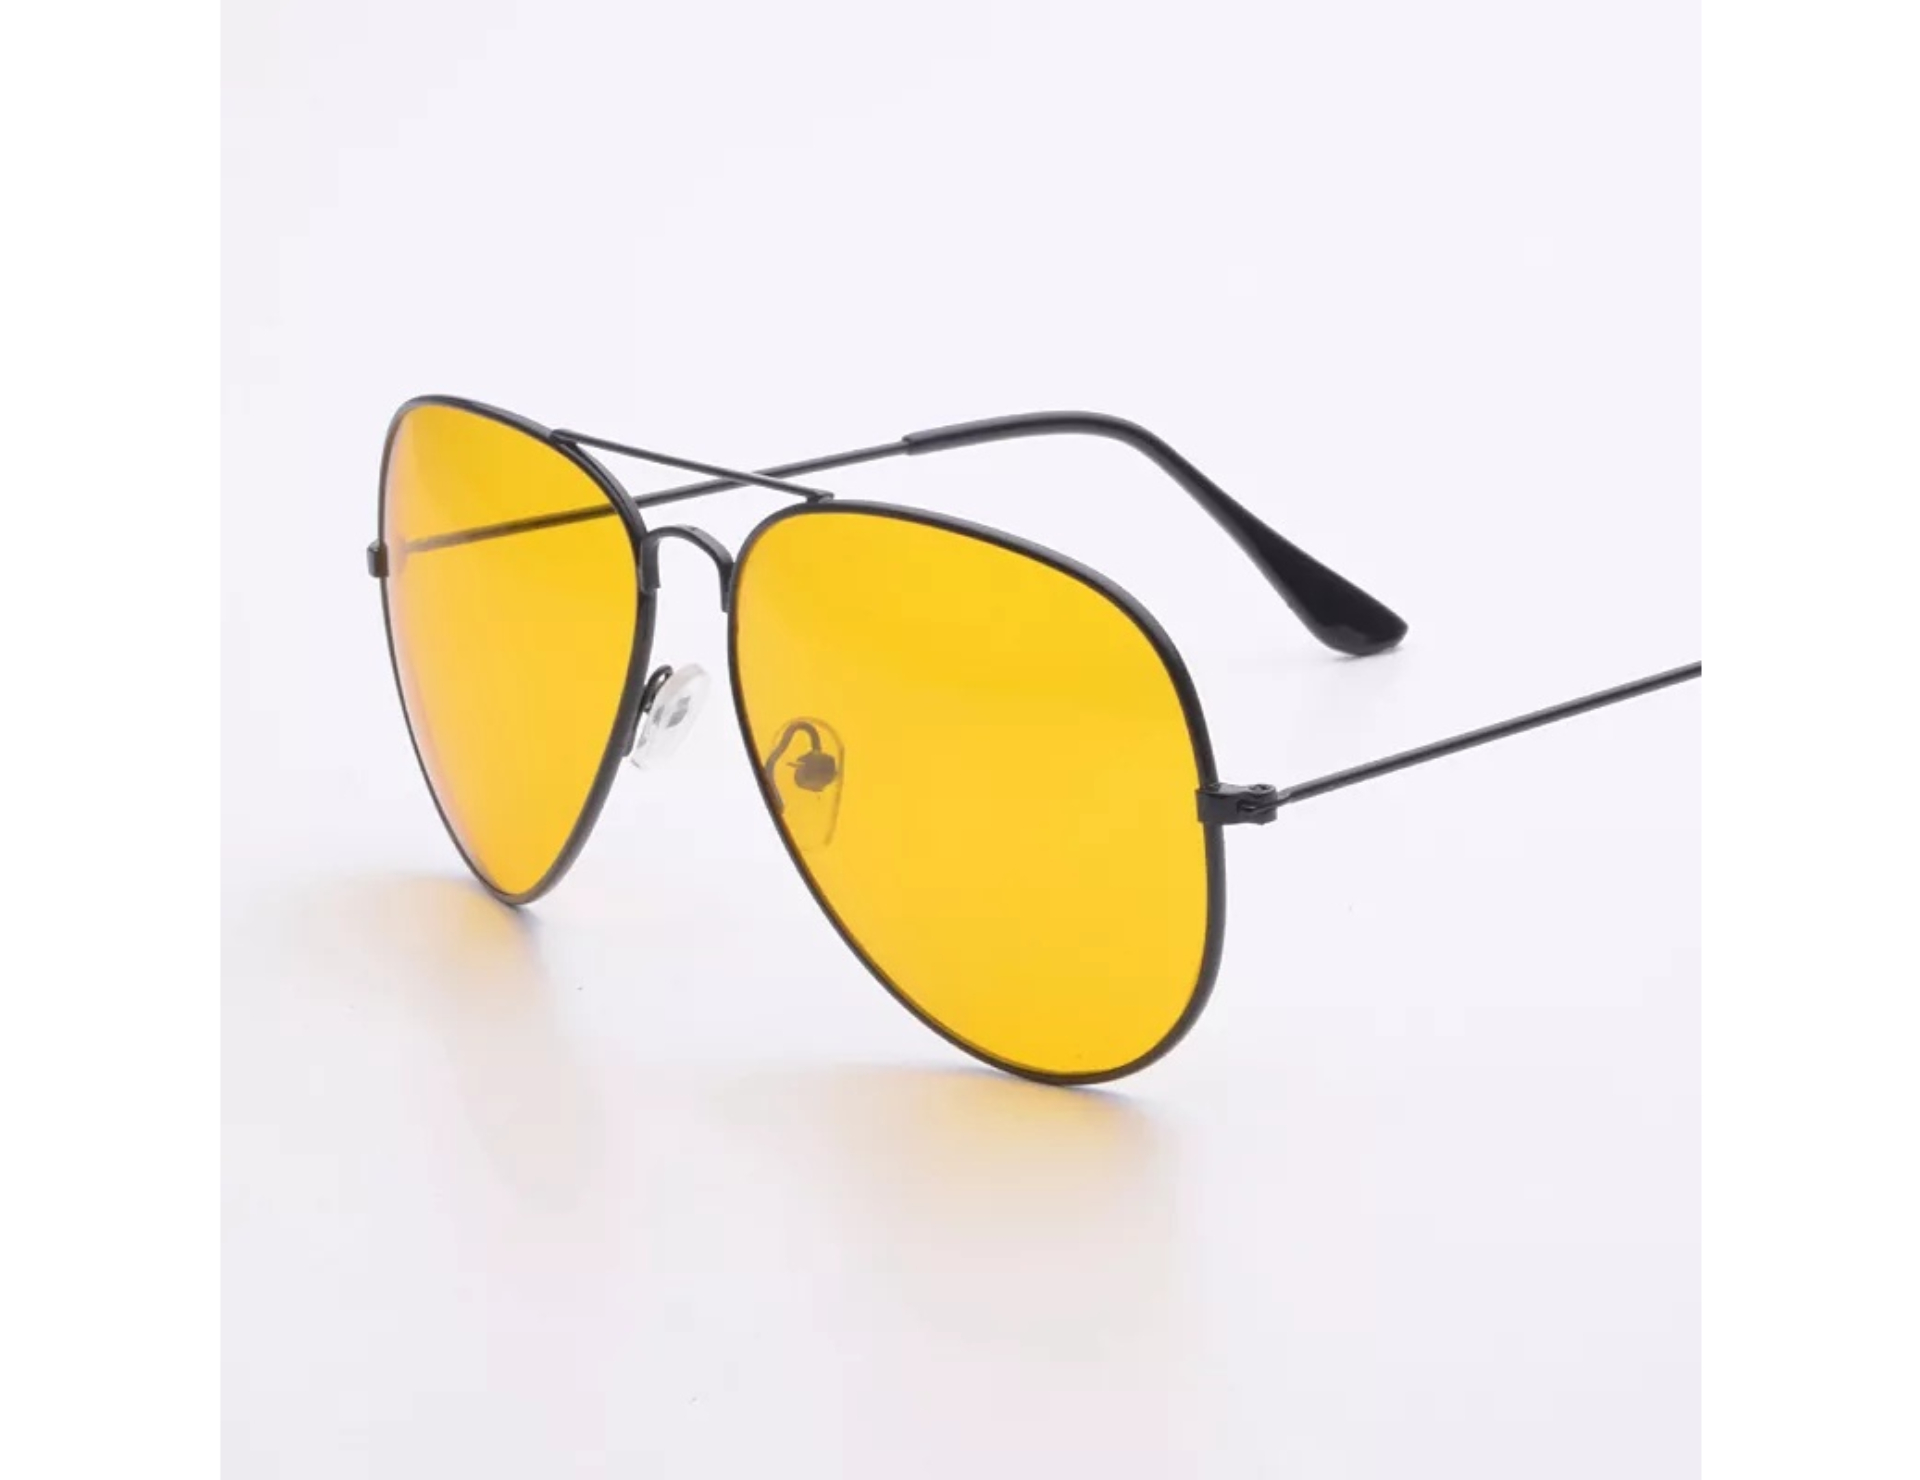 ETRG Unisex Premium  Aviators Yellow Metal Sunglasses (Pack of 2)